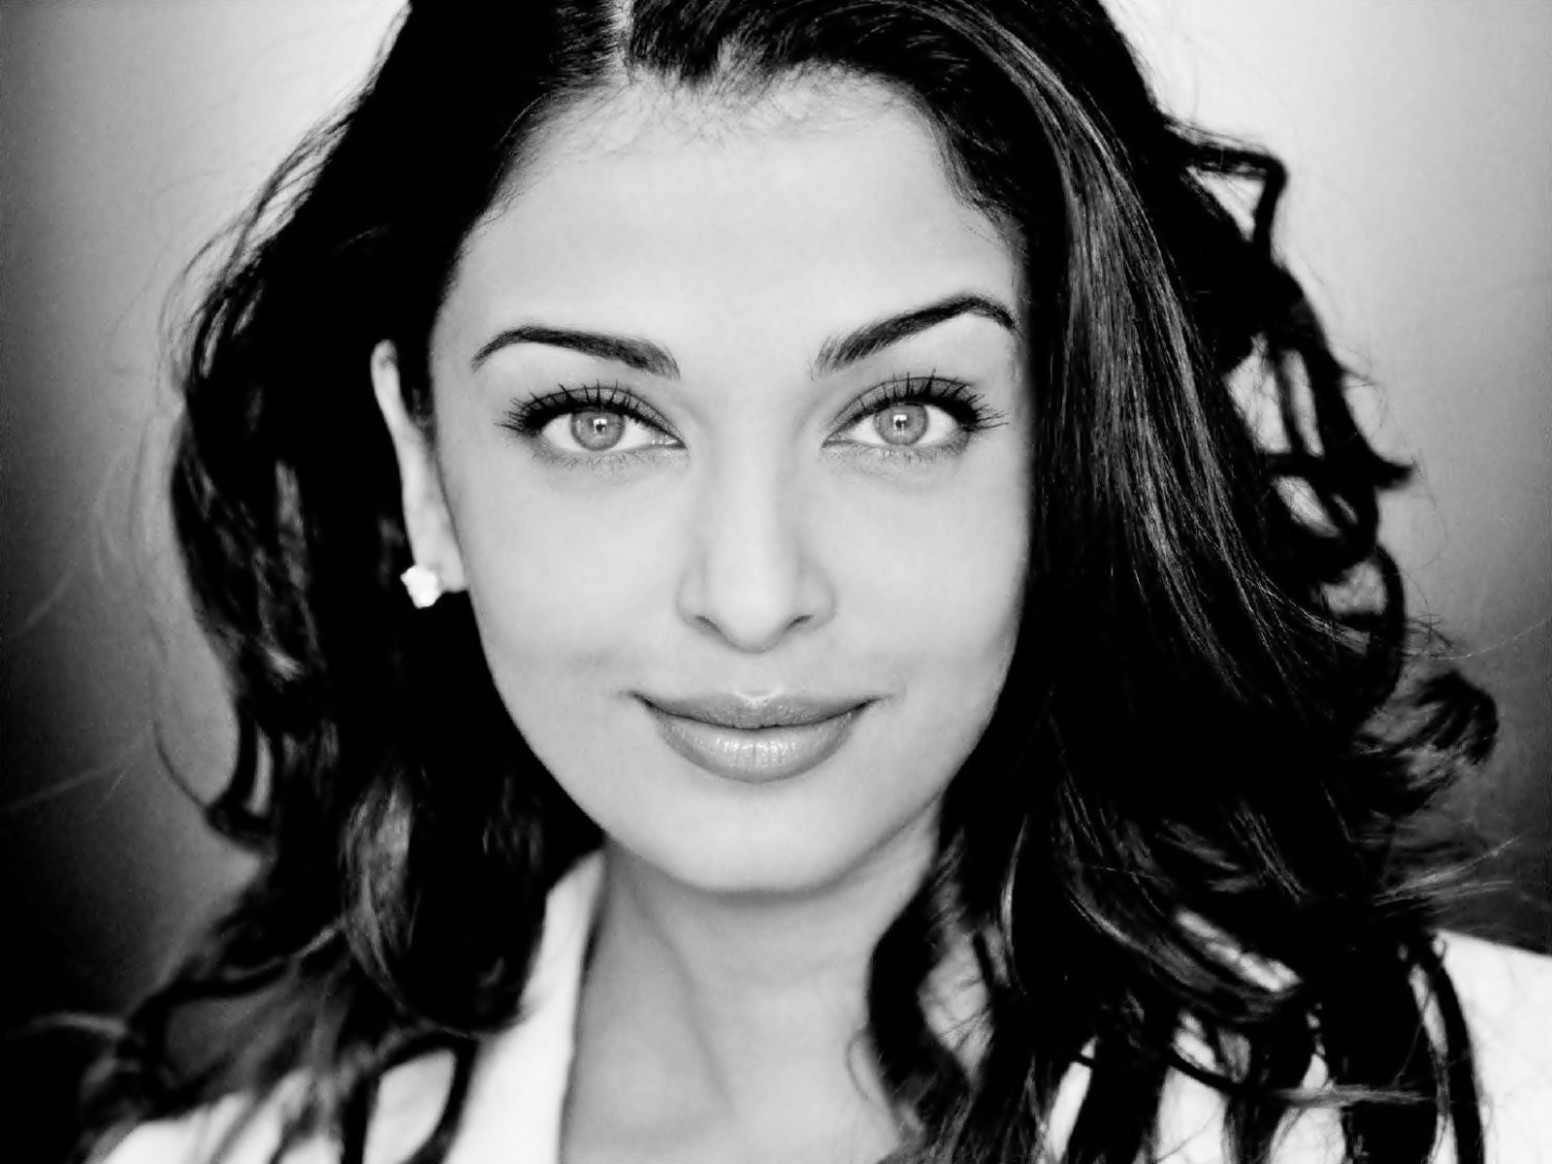 bollywood actress images Aishwarya Rai HD wallpaper and ...